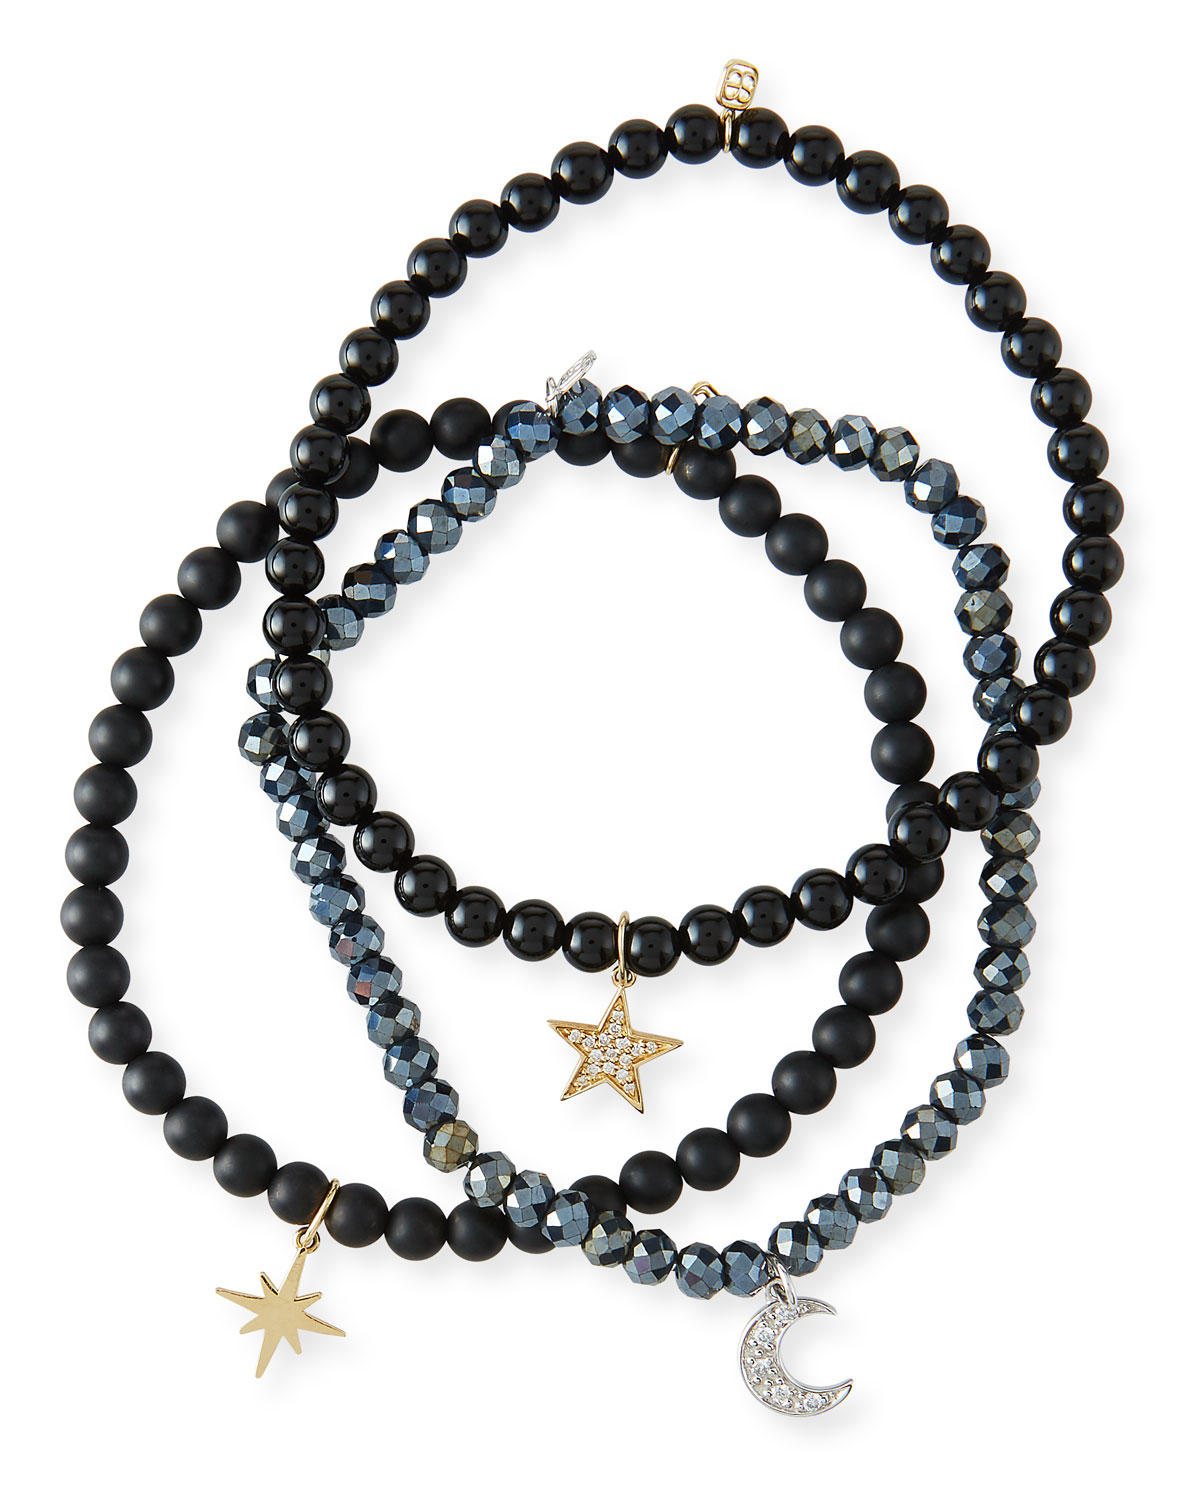 Sydney Evan Accessories DARK NIGHT CELESTIAL TRIO 14K DIAMOND BRACELETS, SET OF 3